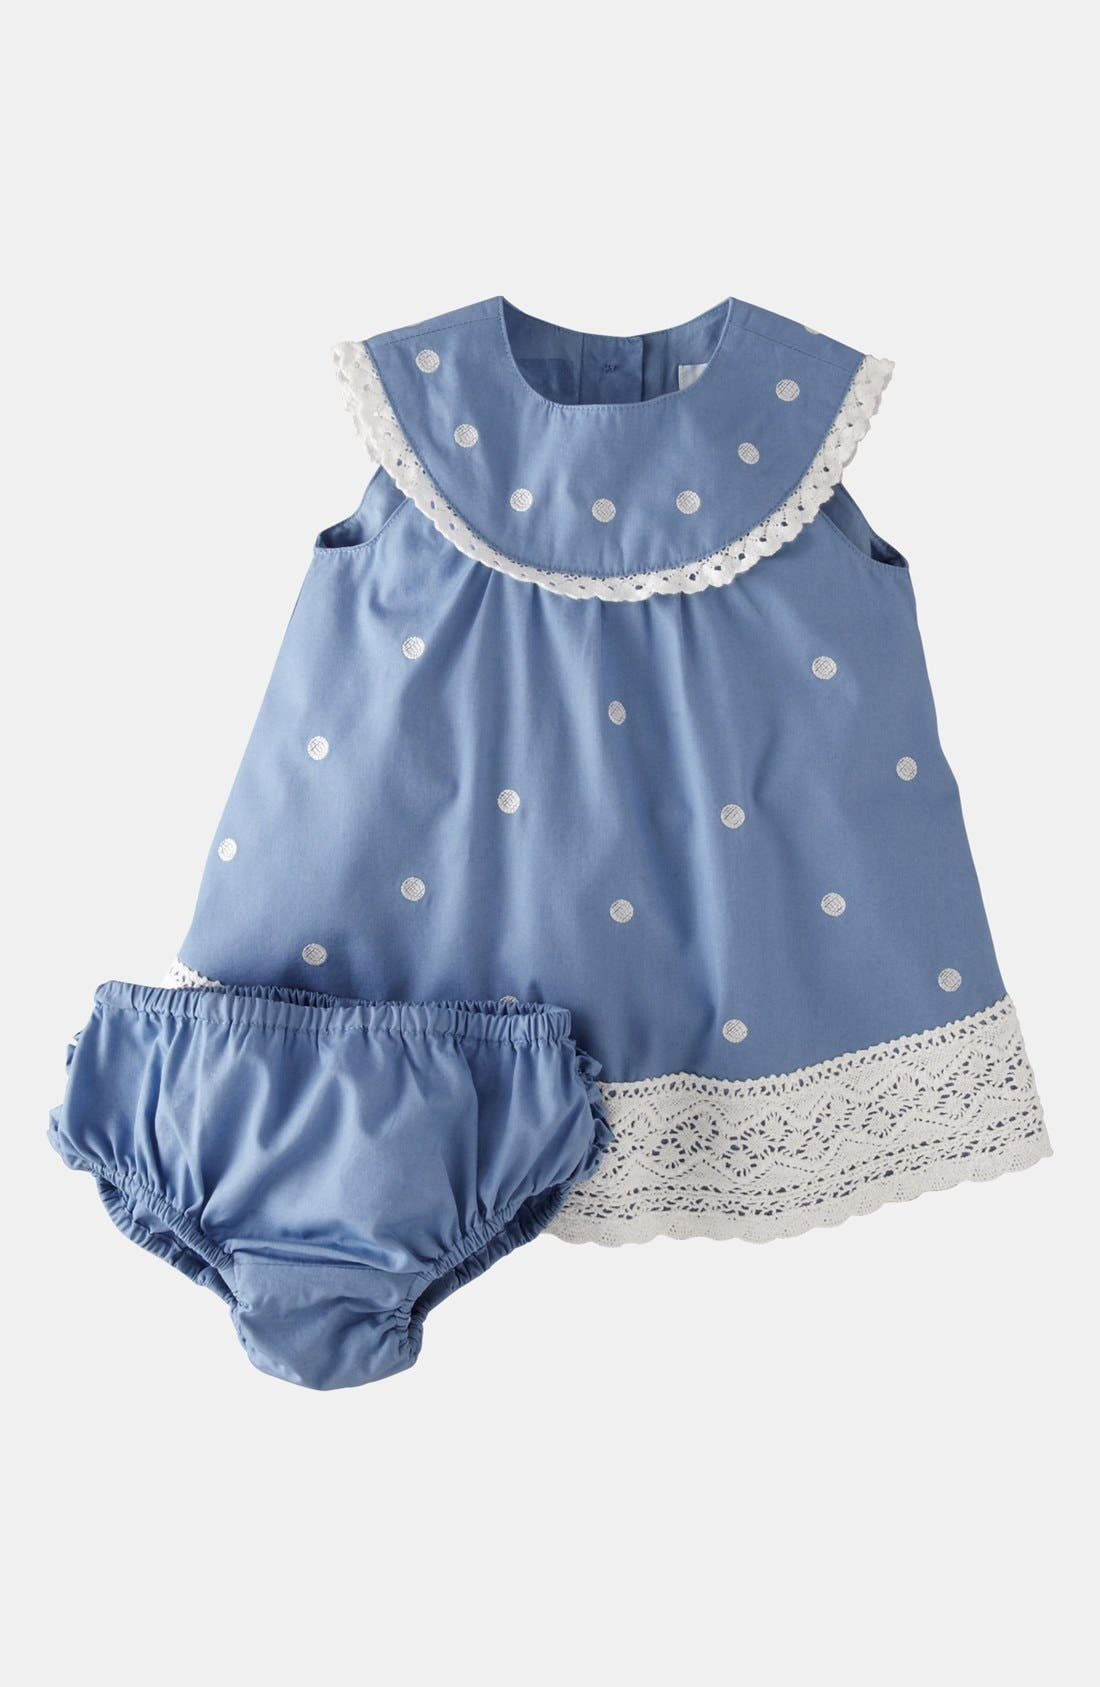 Main Image - Mini Boden 'Crochet Trim' Dress & Bloomers (Baby)